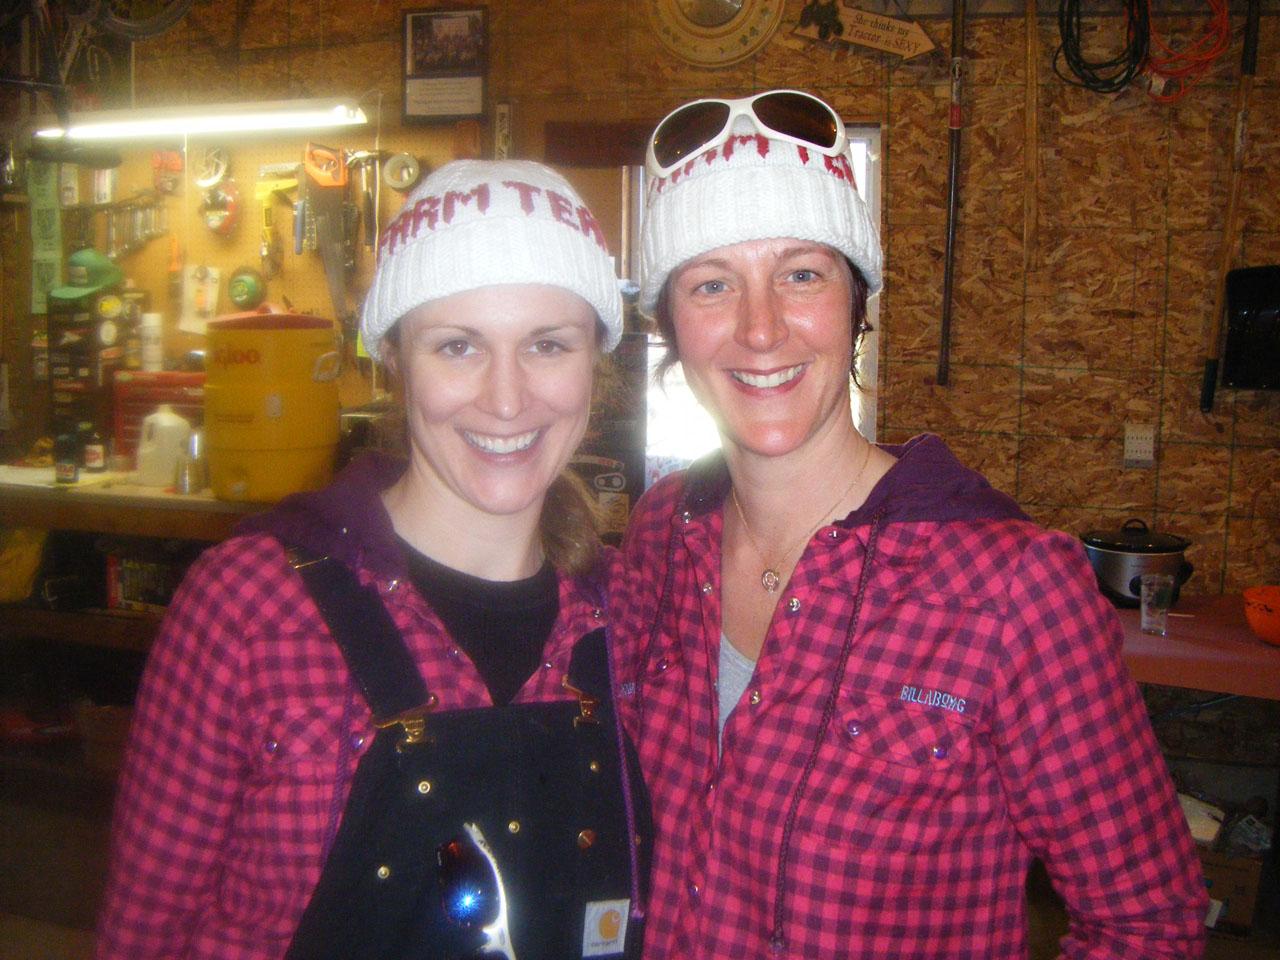 Snowcross Farm Team\'s Tara Jansen(l) and Shari Versluis post-race ©Marc Dettman